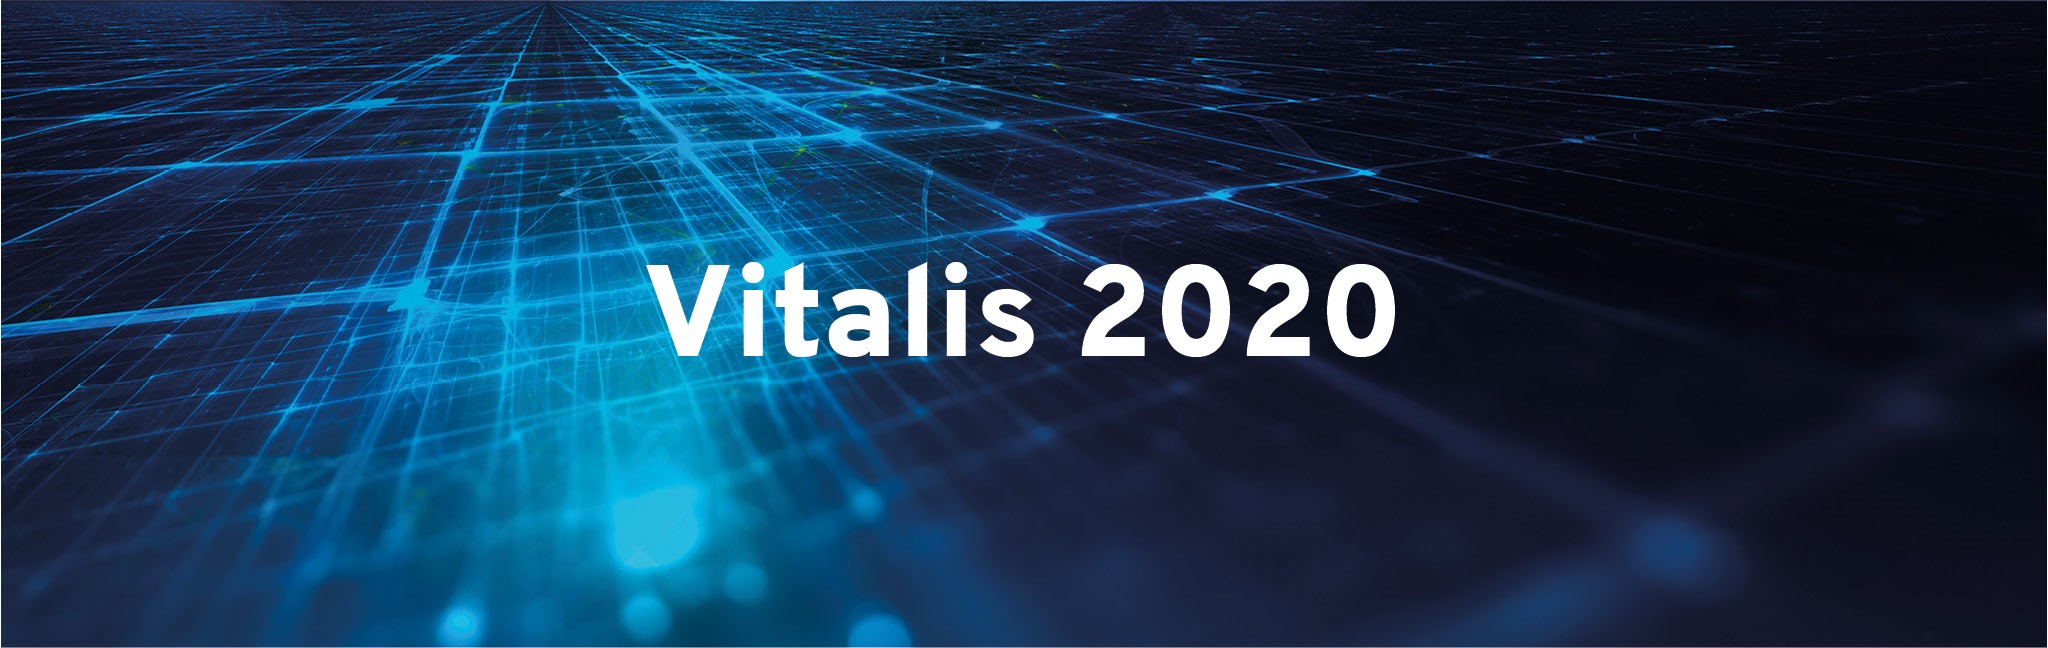 Header image for Vitalis 2020